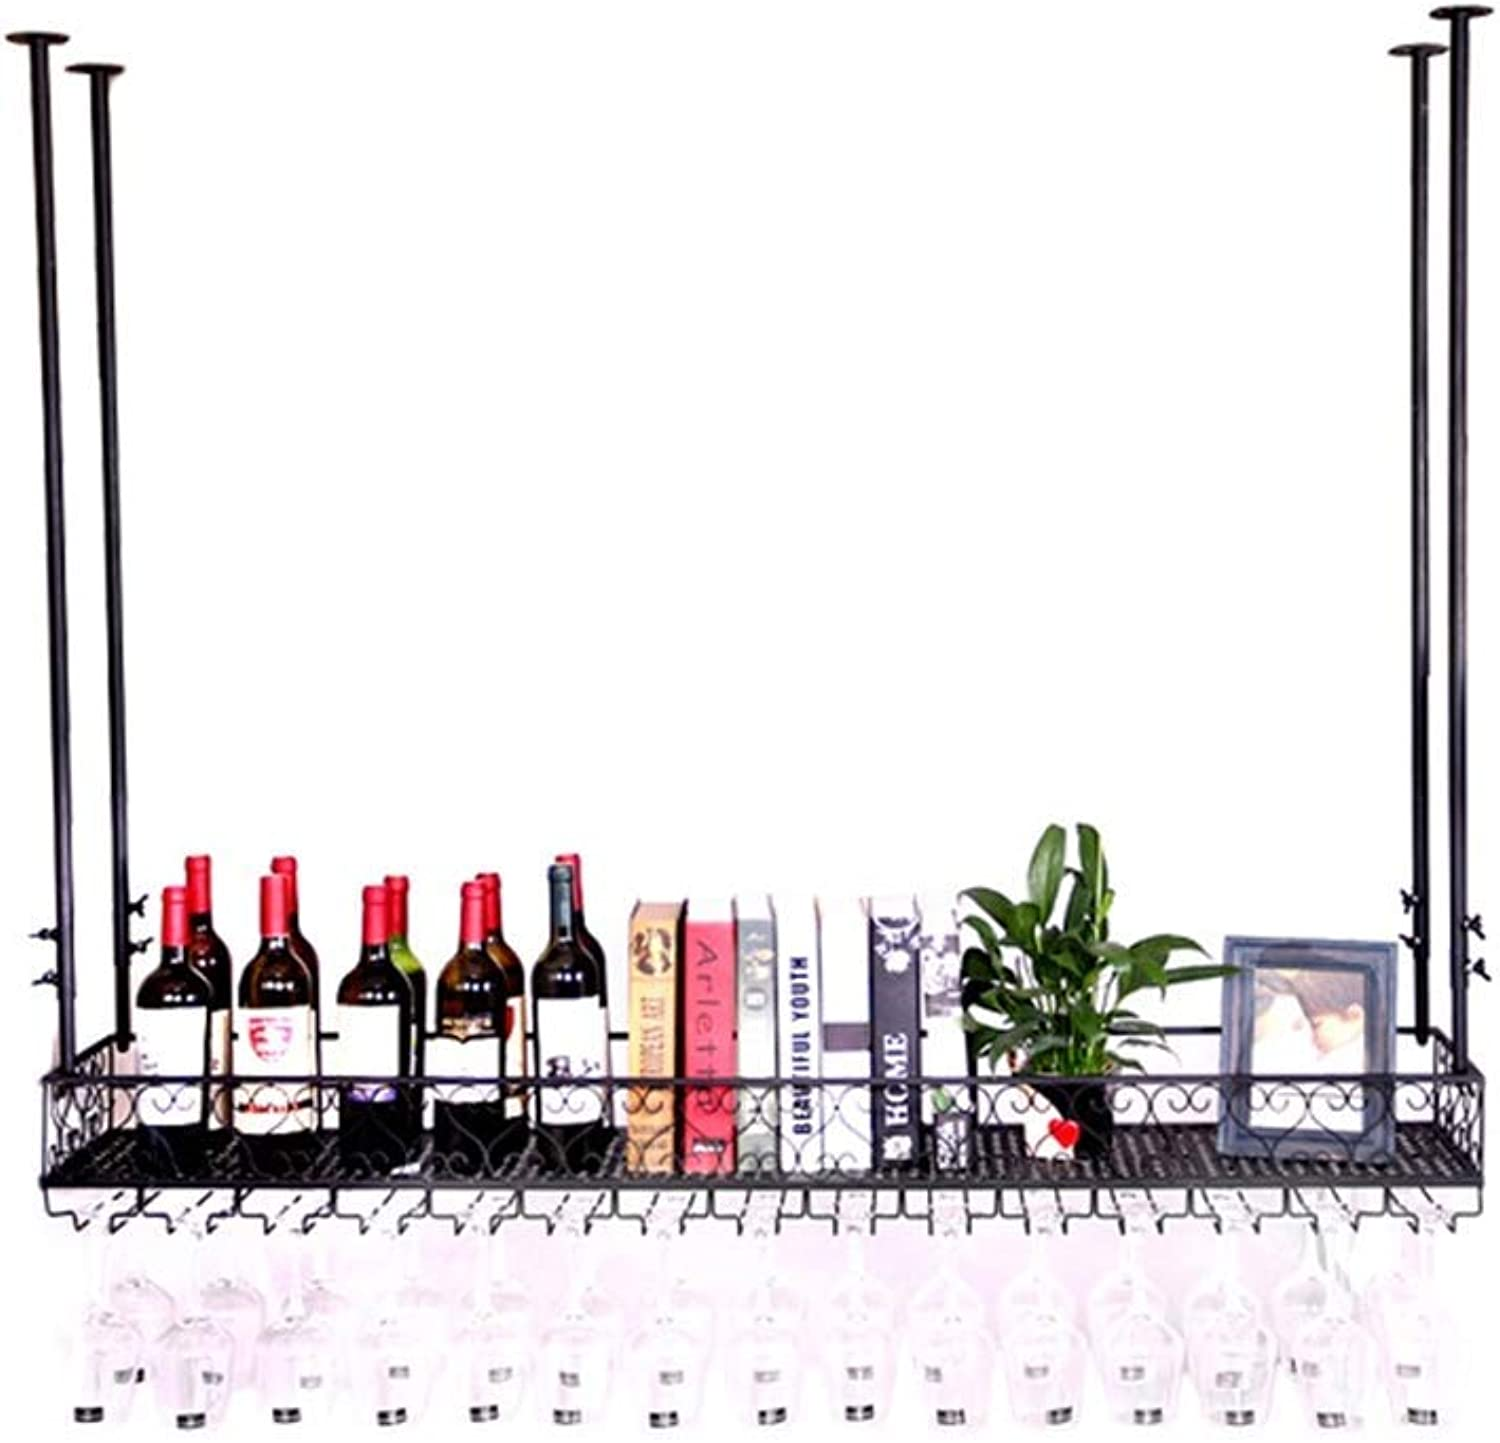 Red Wine Shelf Wine Cabinet 2 Tiers Ceiling Wine Racks Wall Mounted Hanging Wine Bottle Holder Metal Iron Storage Wine Glass Rack Goblet Stemware Racks Vintage Style Creative Bar Decoration Home Bar F